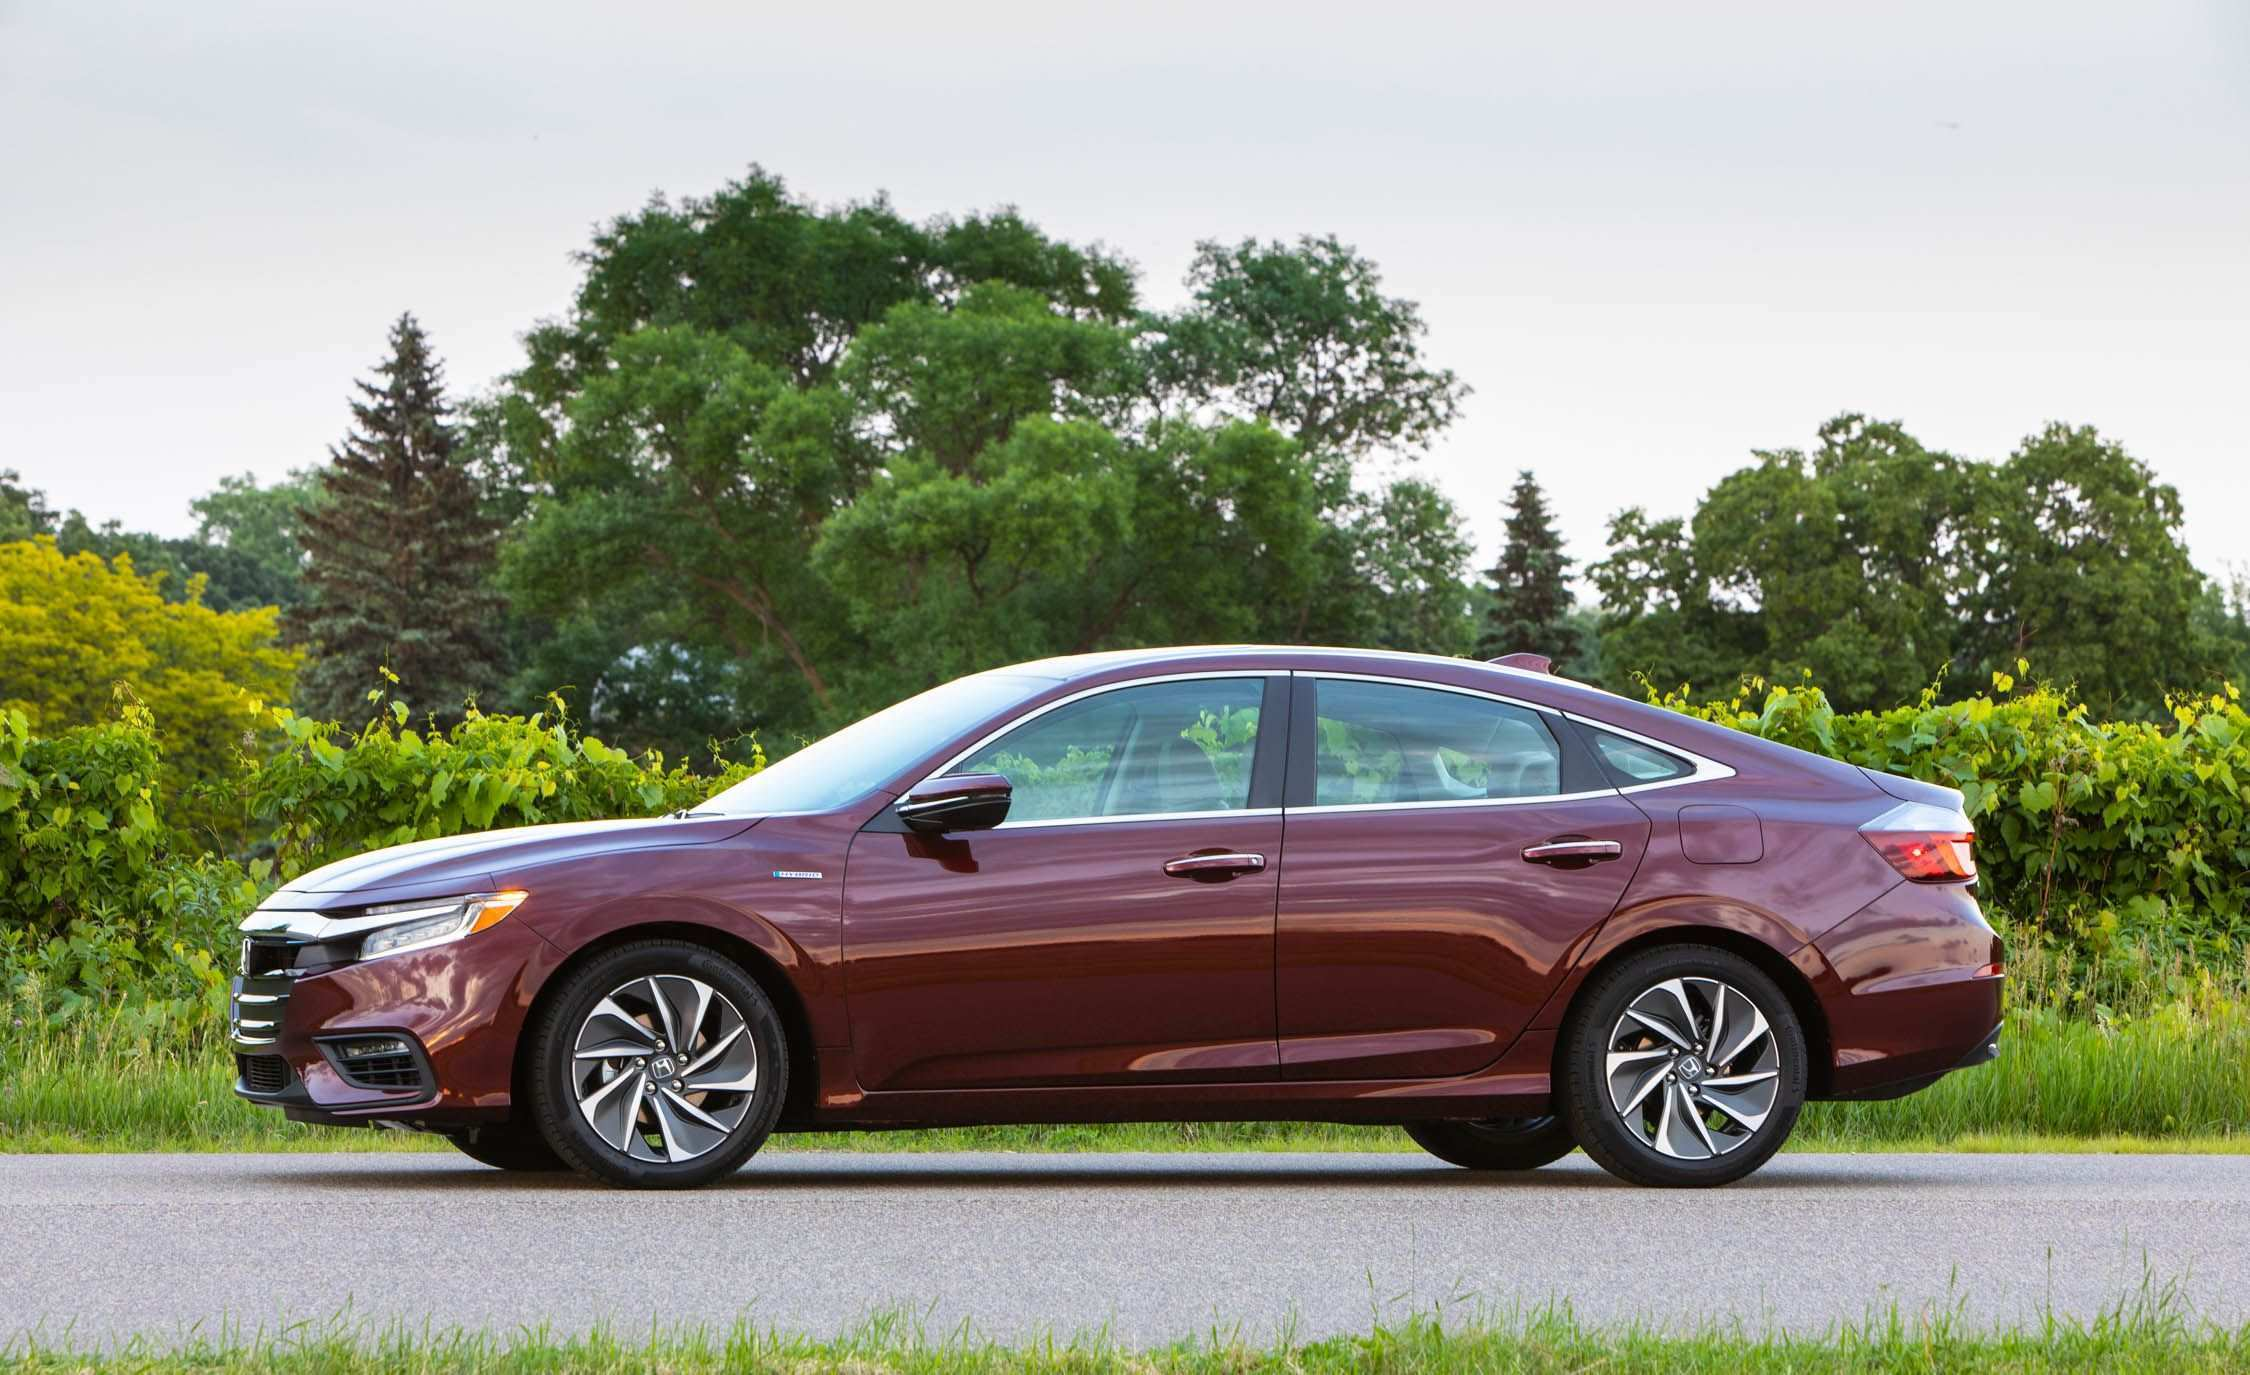 58 Great 2019 Honda Insight Review Release for 2019 Honda Insight Review